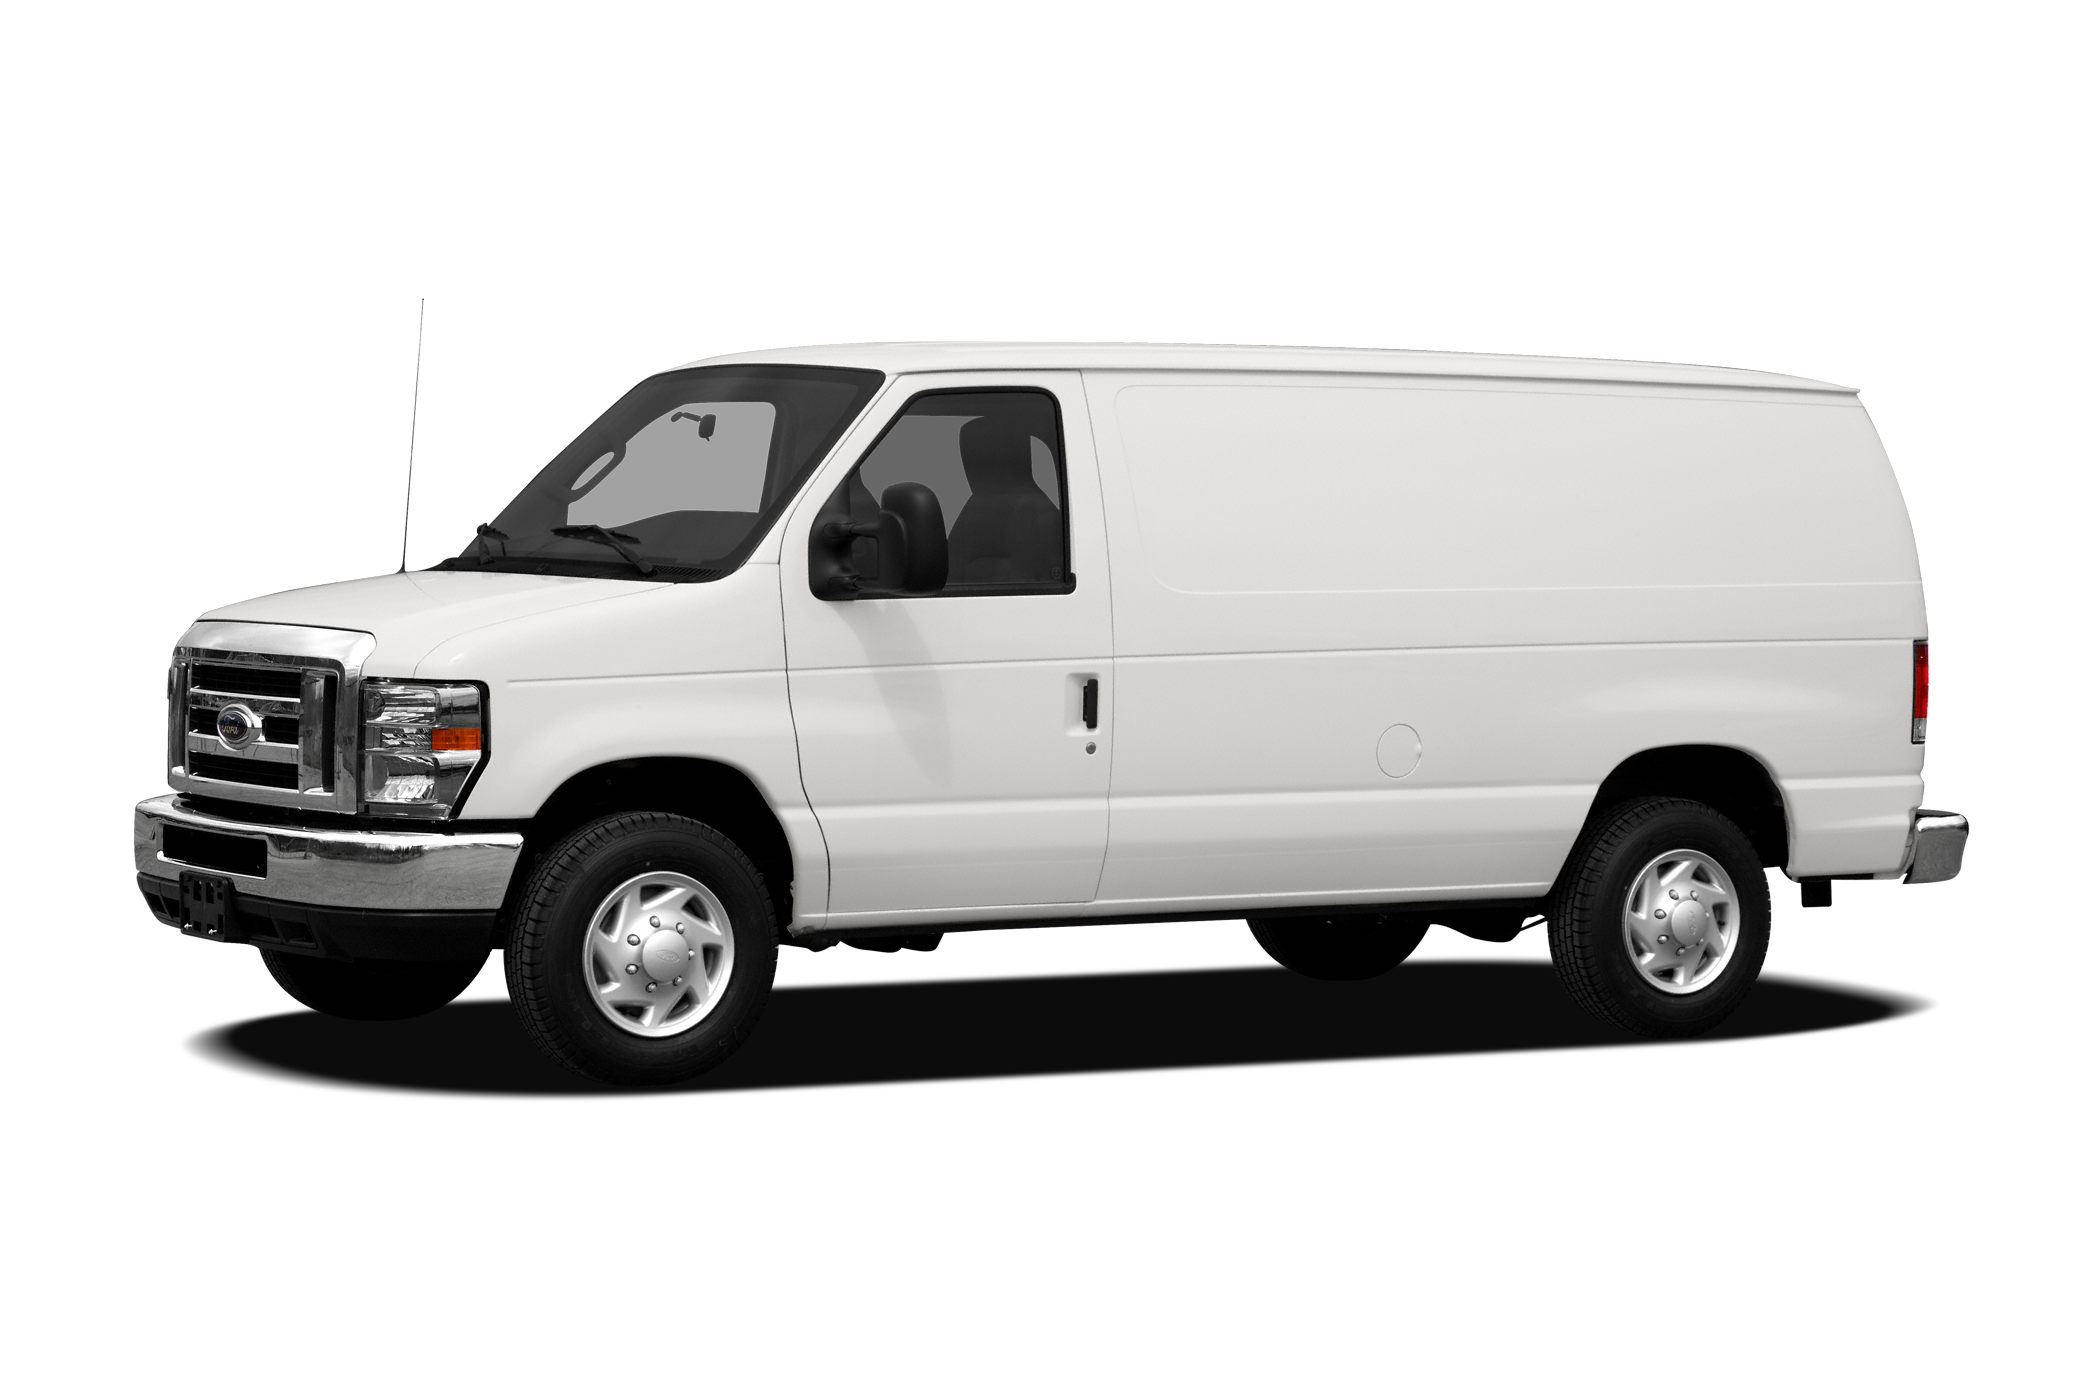 2010 Ford E350 Super Duty Passenger Van for sale in Charlotte for $19,995 with 62,490 miles.